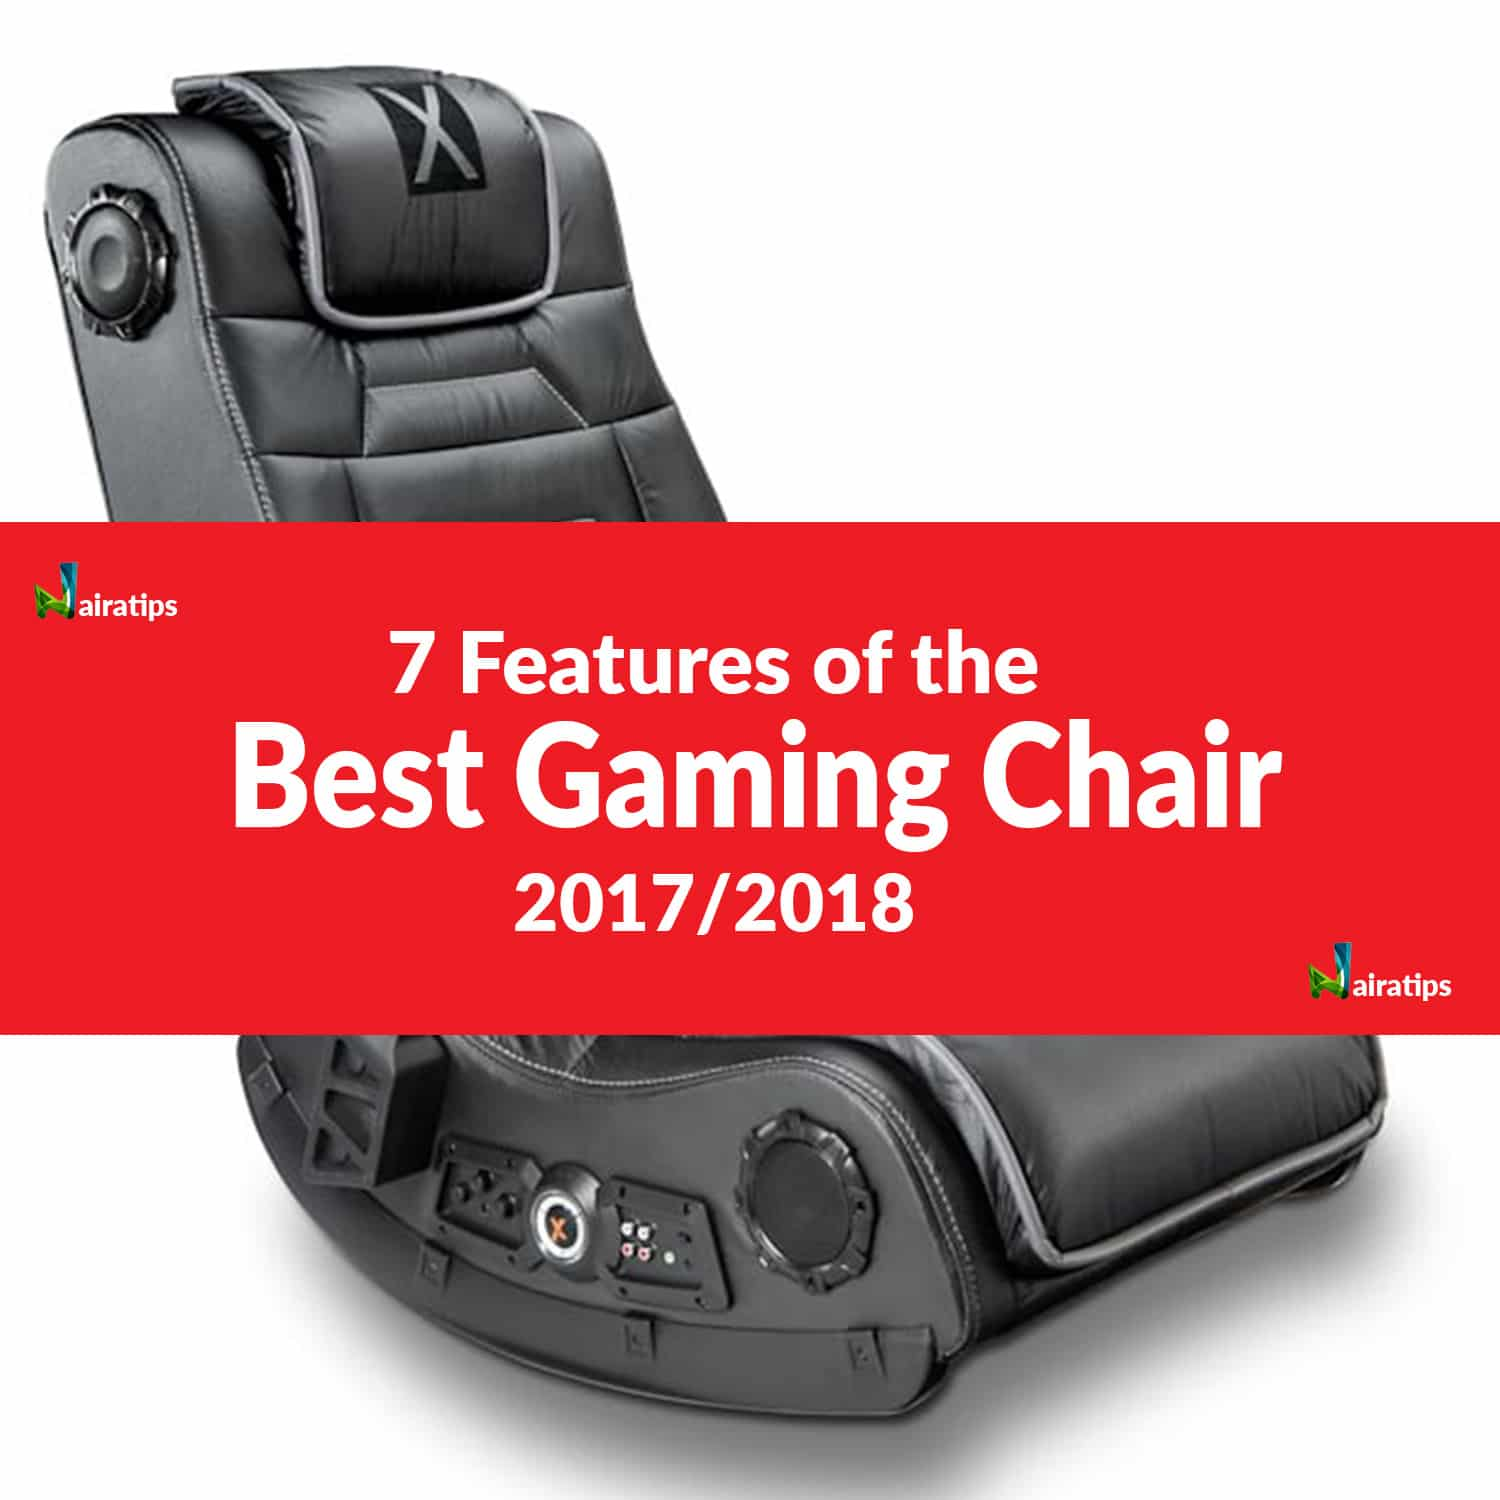 7 Features of the Best Gaming Chair in 2018